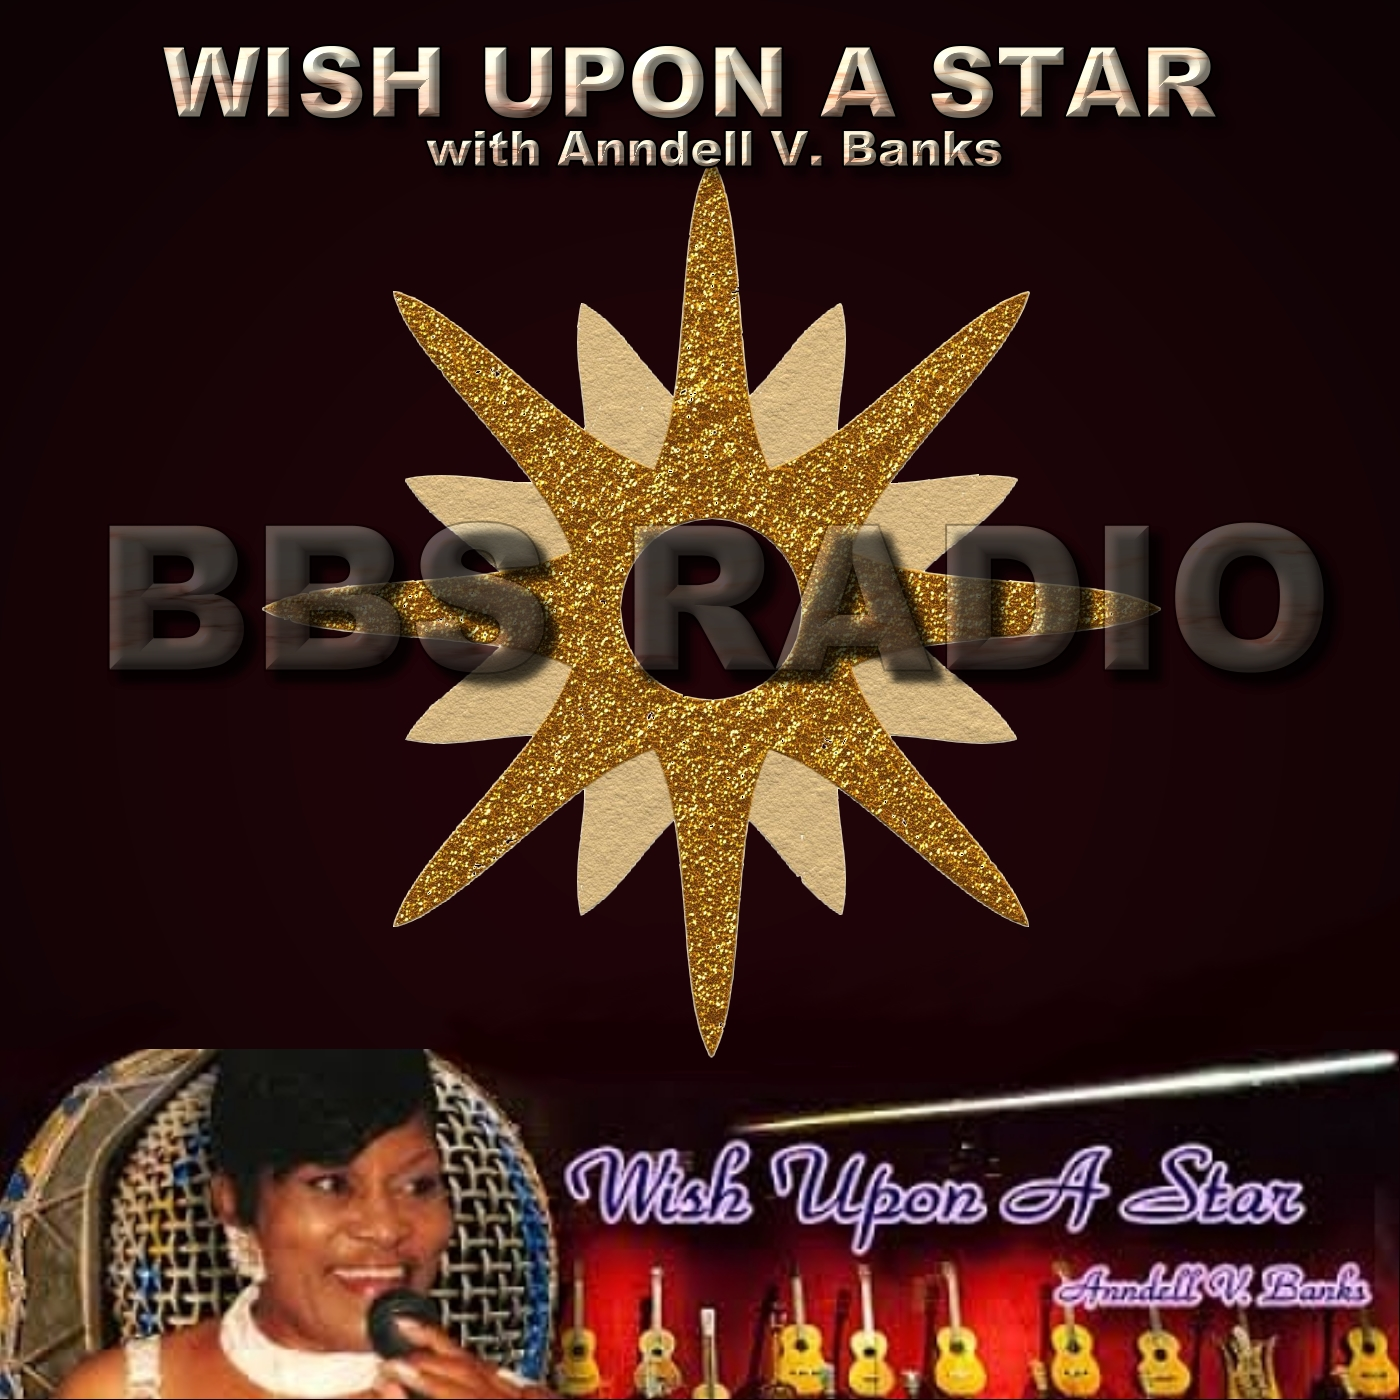 Wish Upon A Star with Anndell V Banks